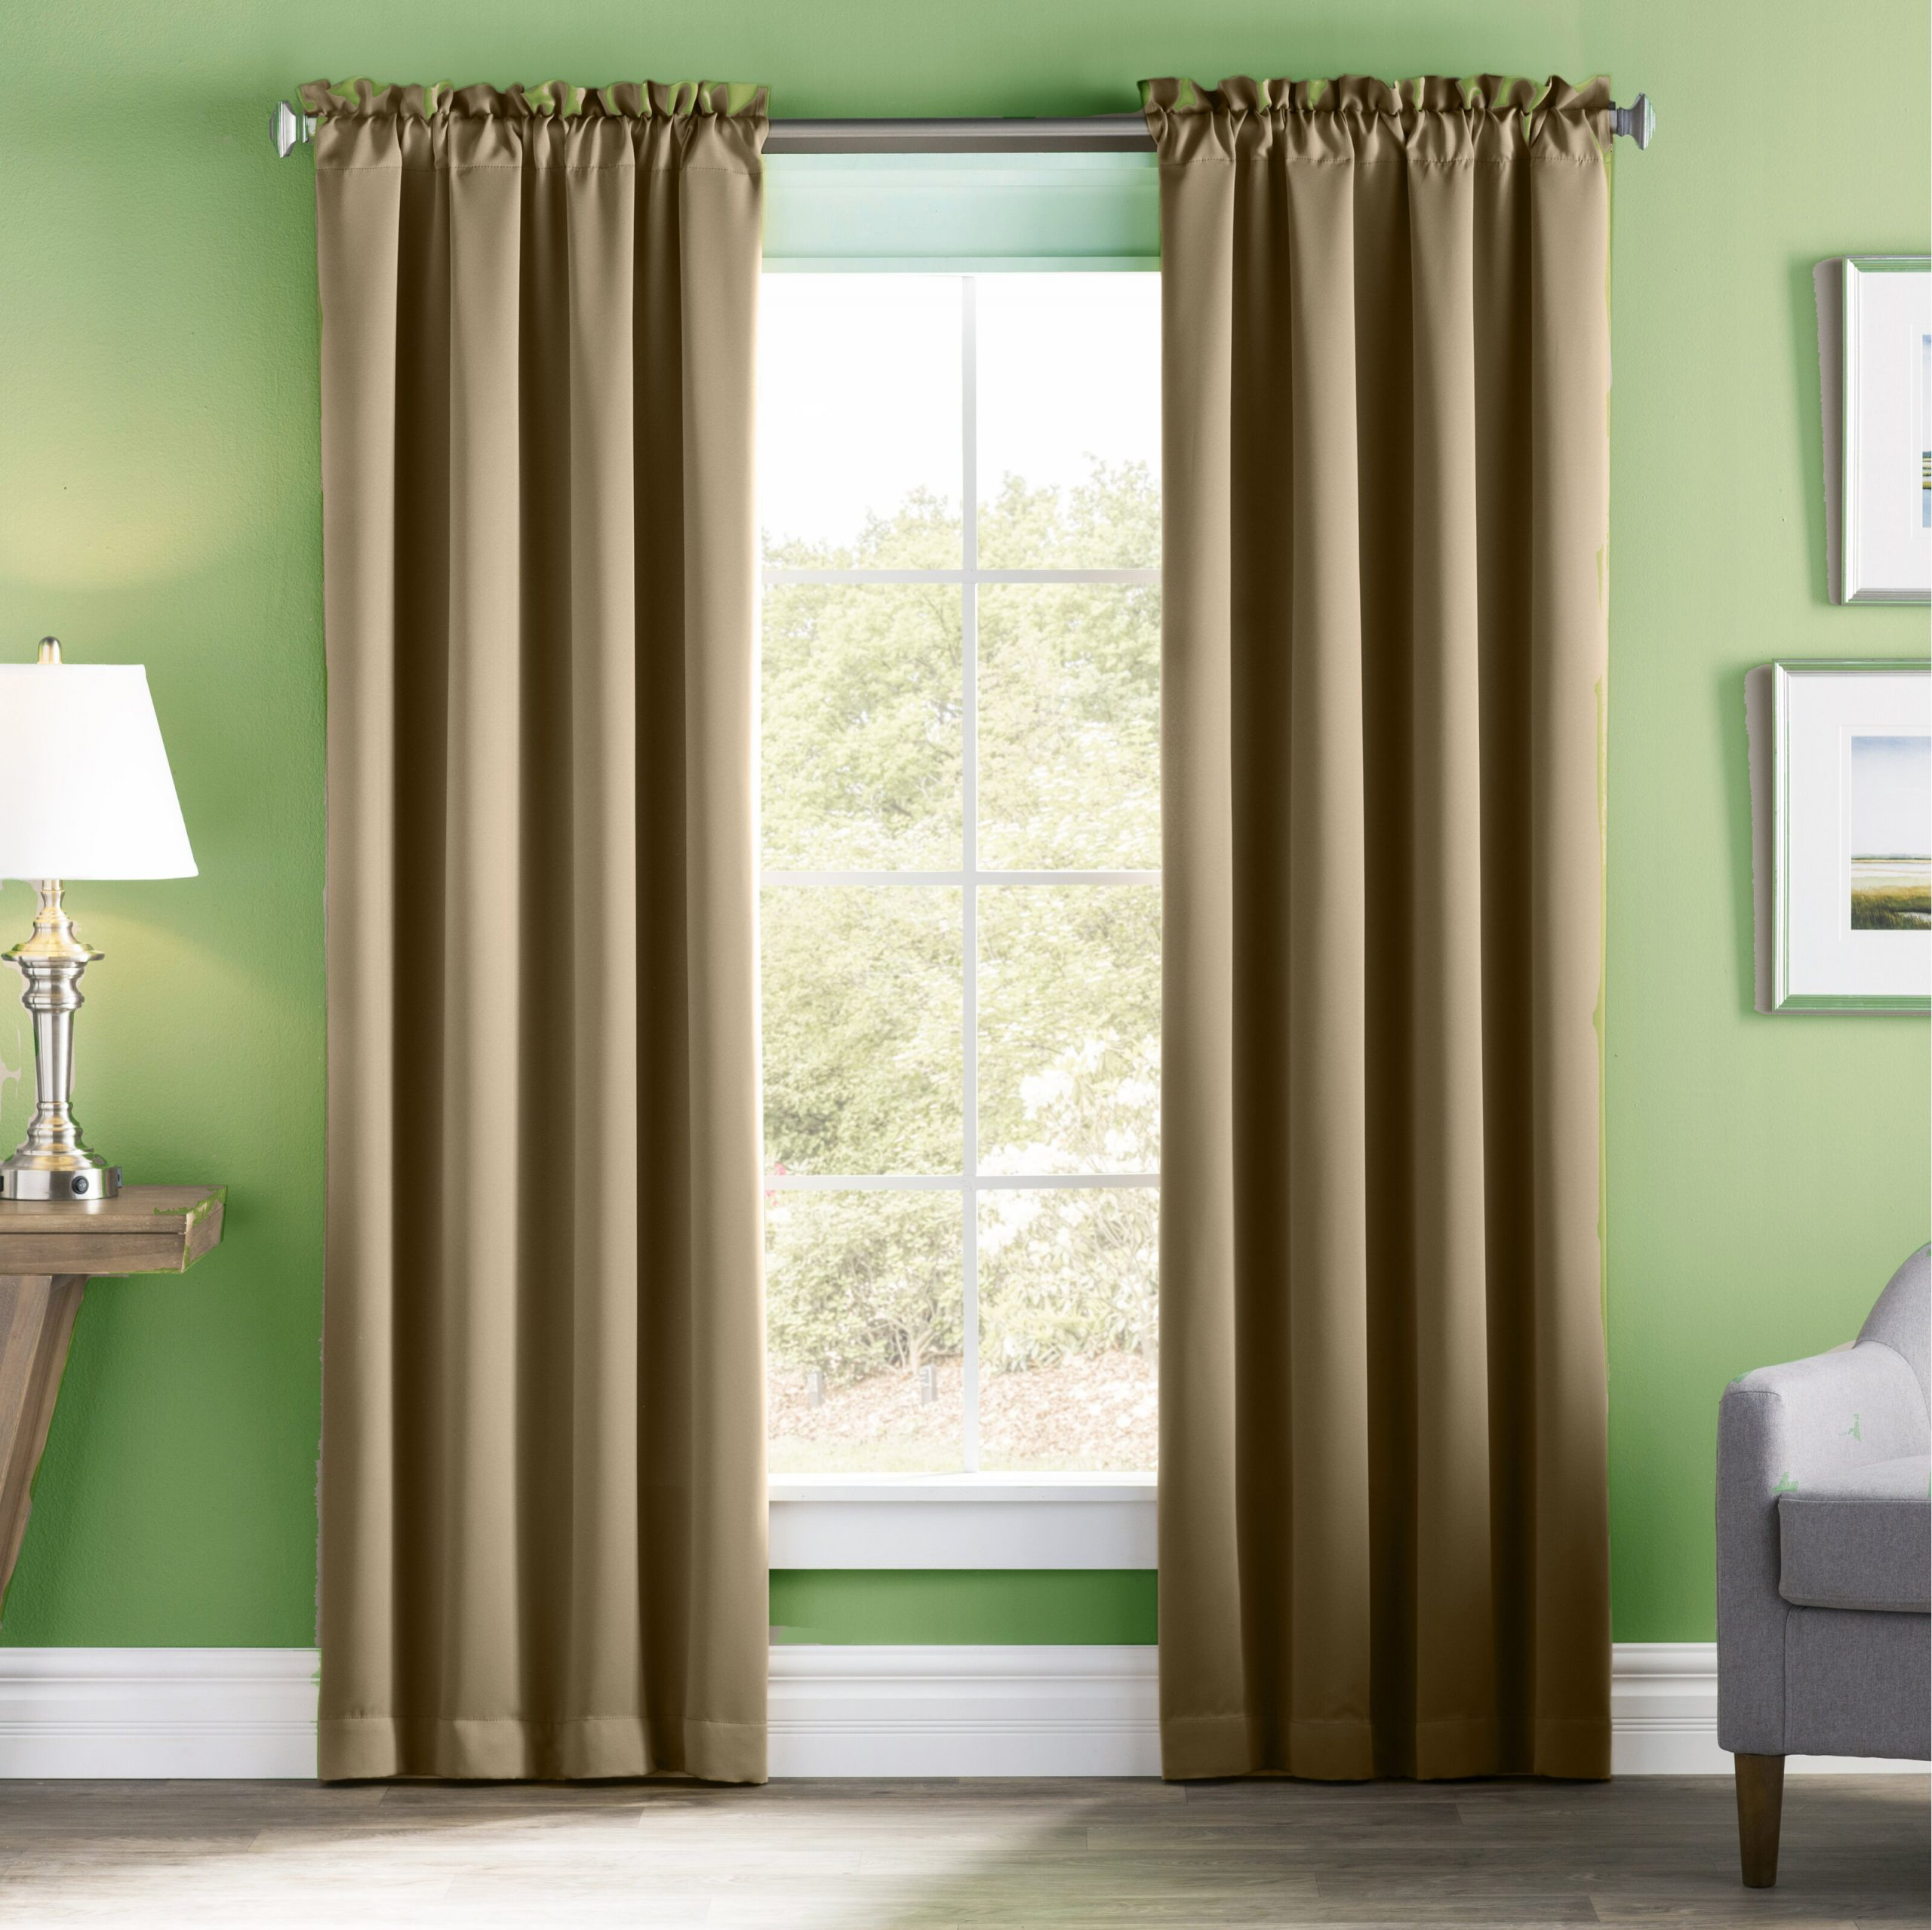 Taupe-Colored Curtains Match Well With Sage Green Walls